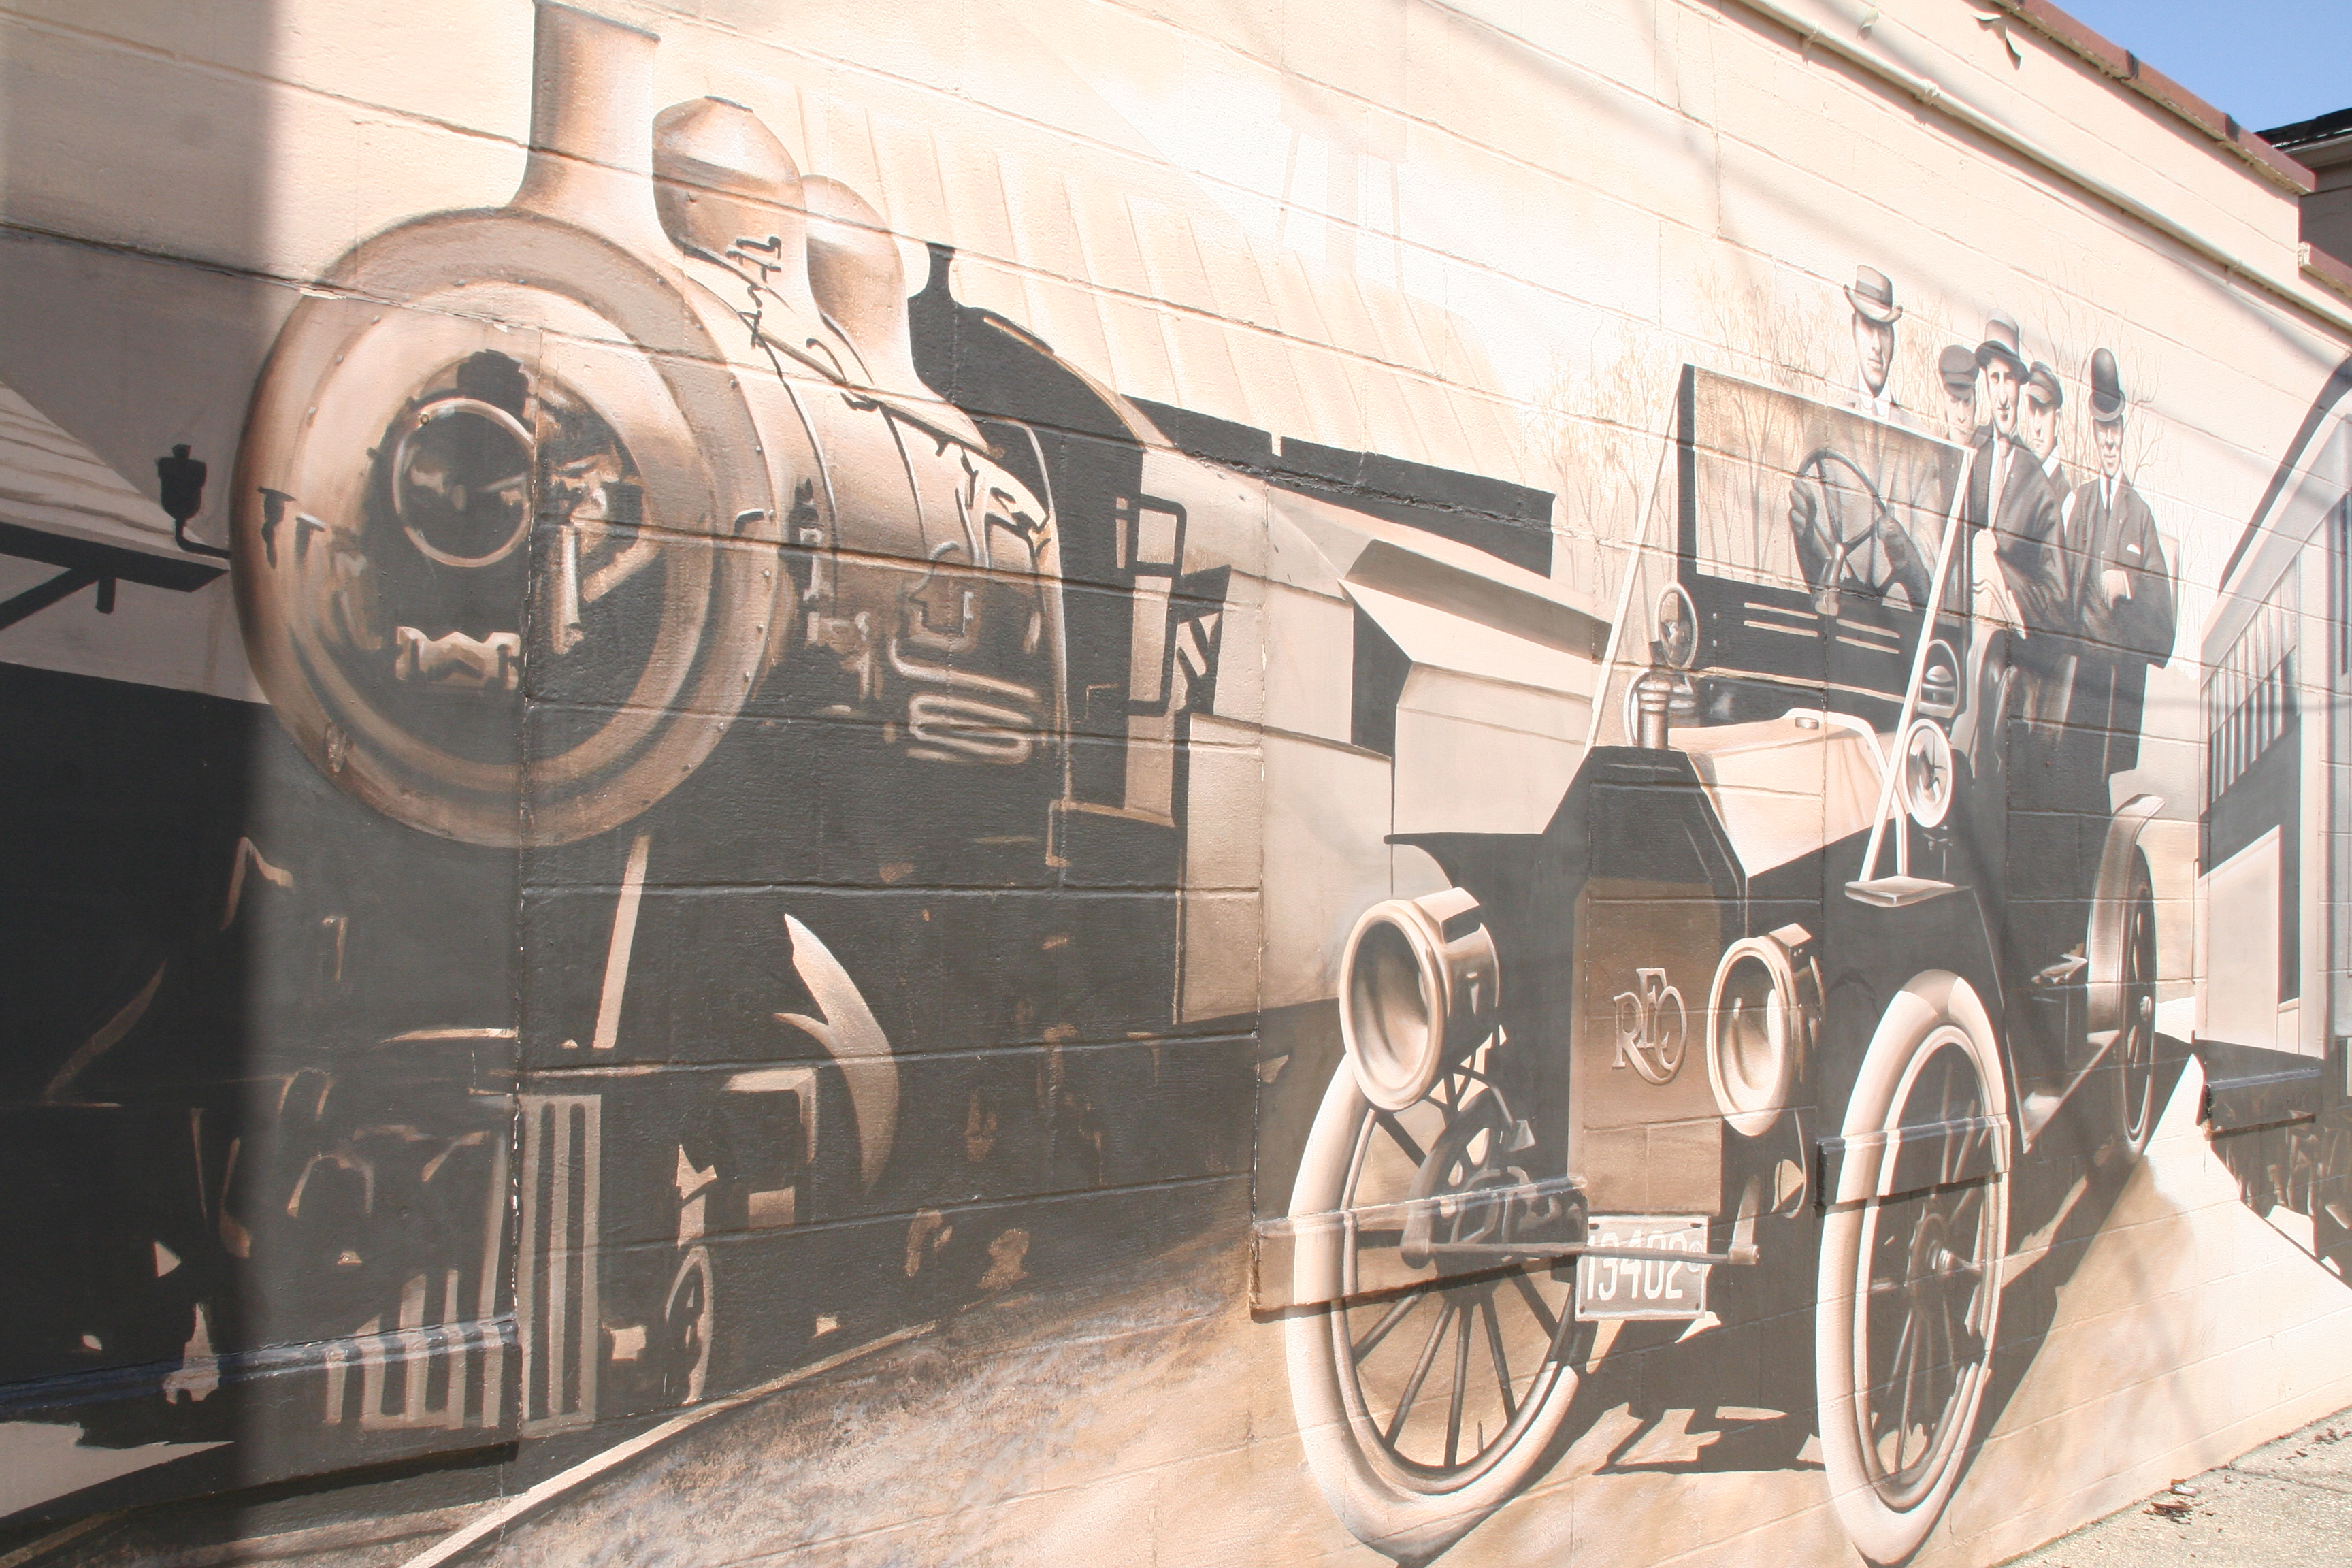 Train and old car on the mural